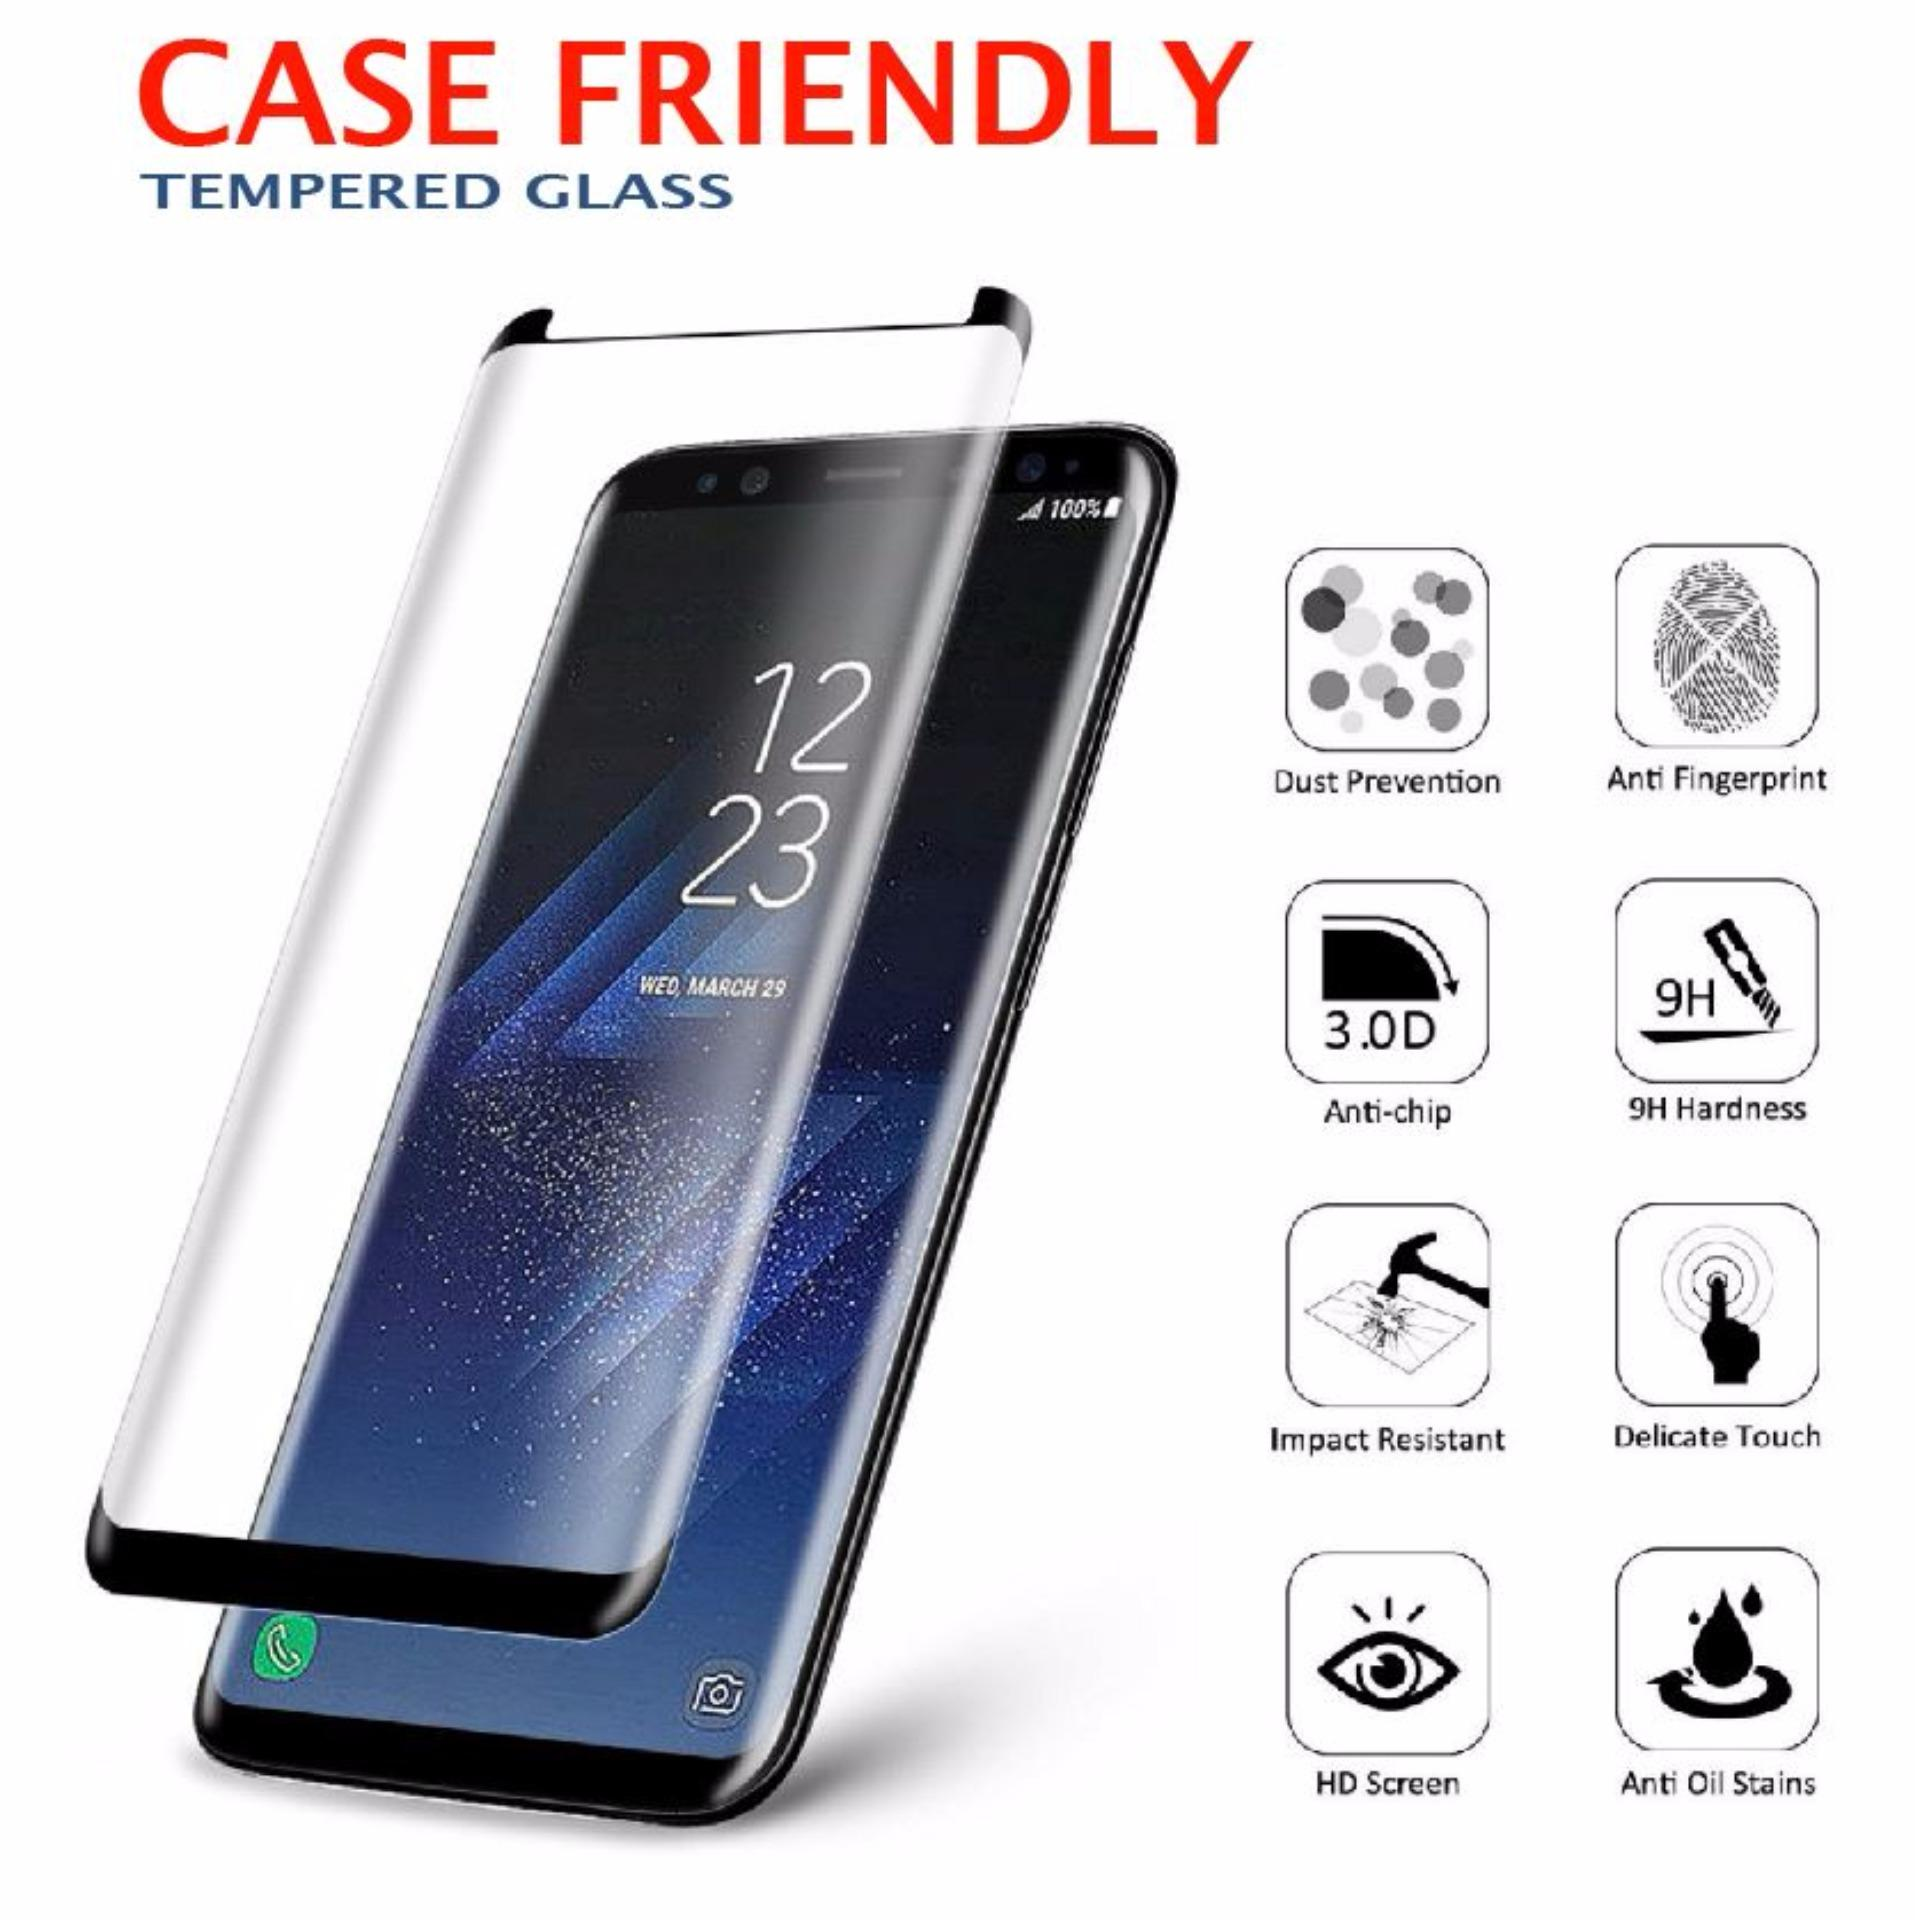 Samsung Galaxy S8 Case Friendly 3D 9H Tempered Glass Screen Protector Protective Film